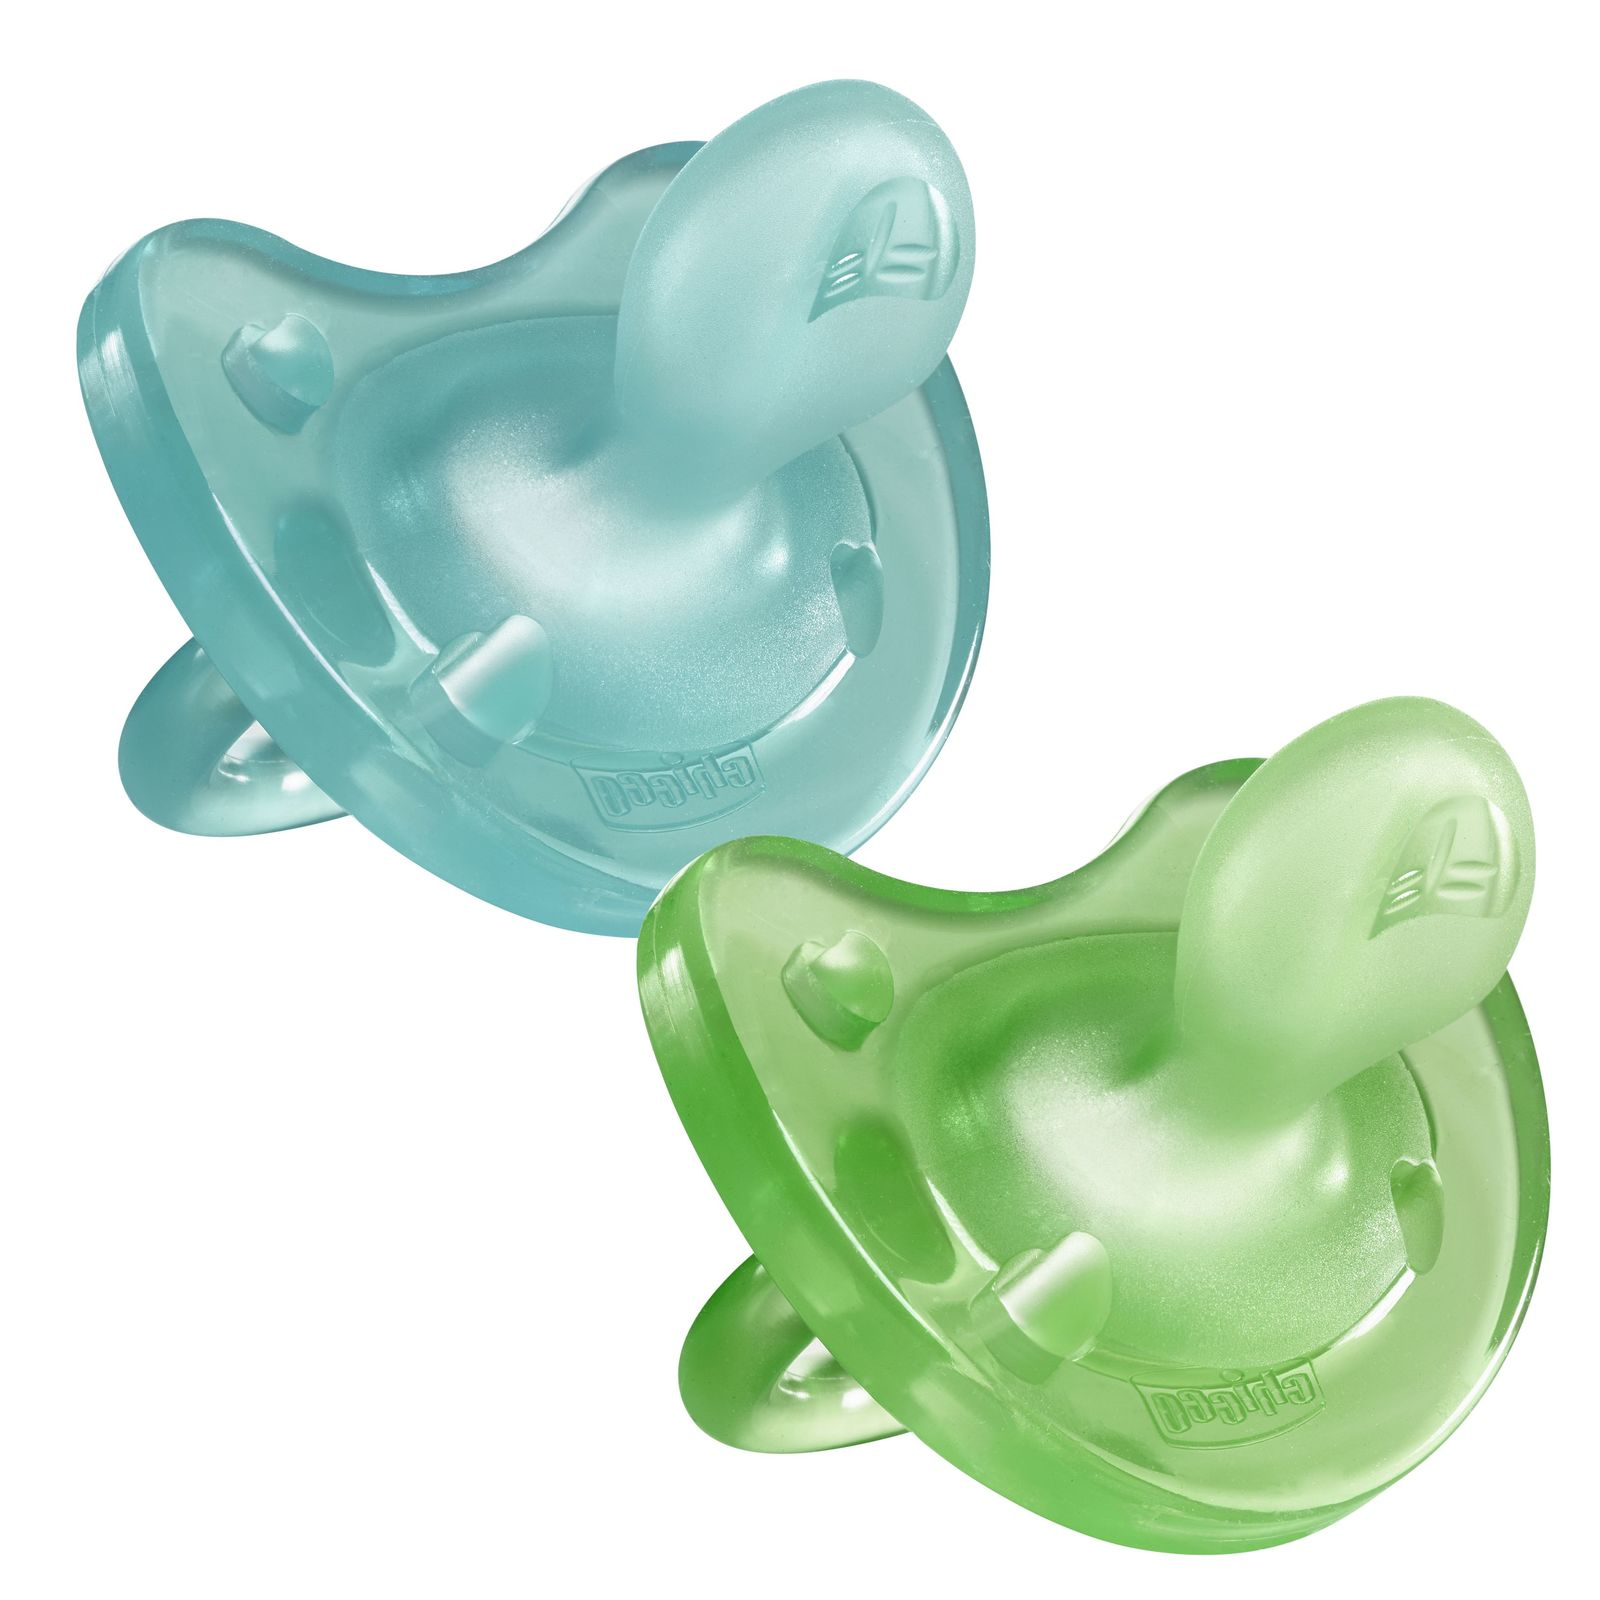 Chicco: Physio Soft Soother - 12m+ 2 Pack (Boy) image